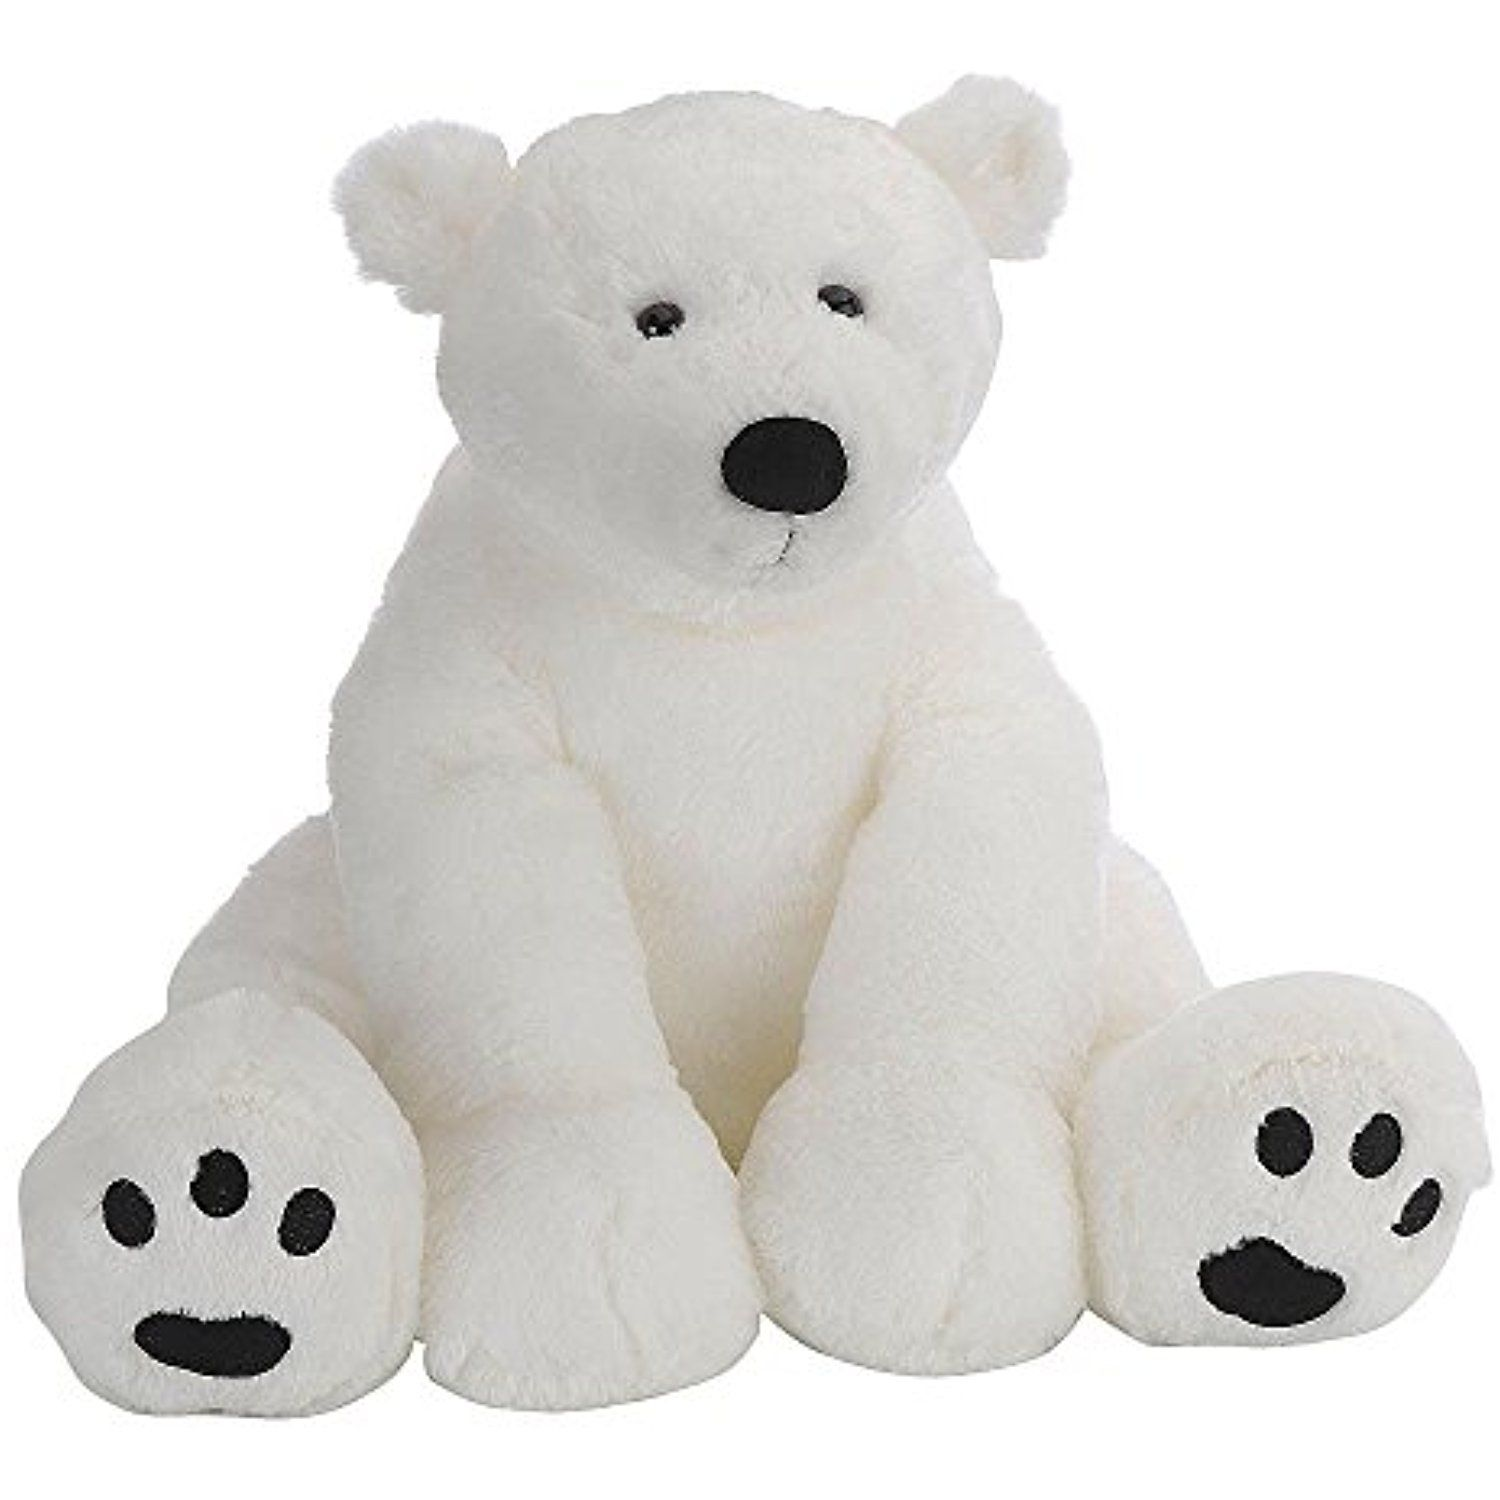 Animal Alley 15.5 inch Polar Bear White by Unknown